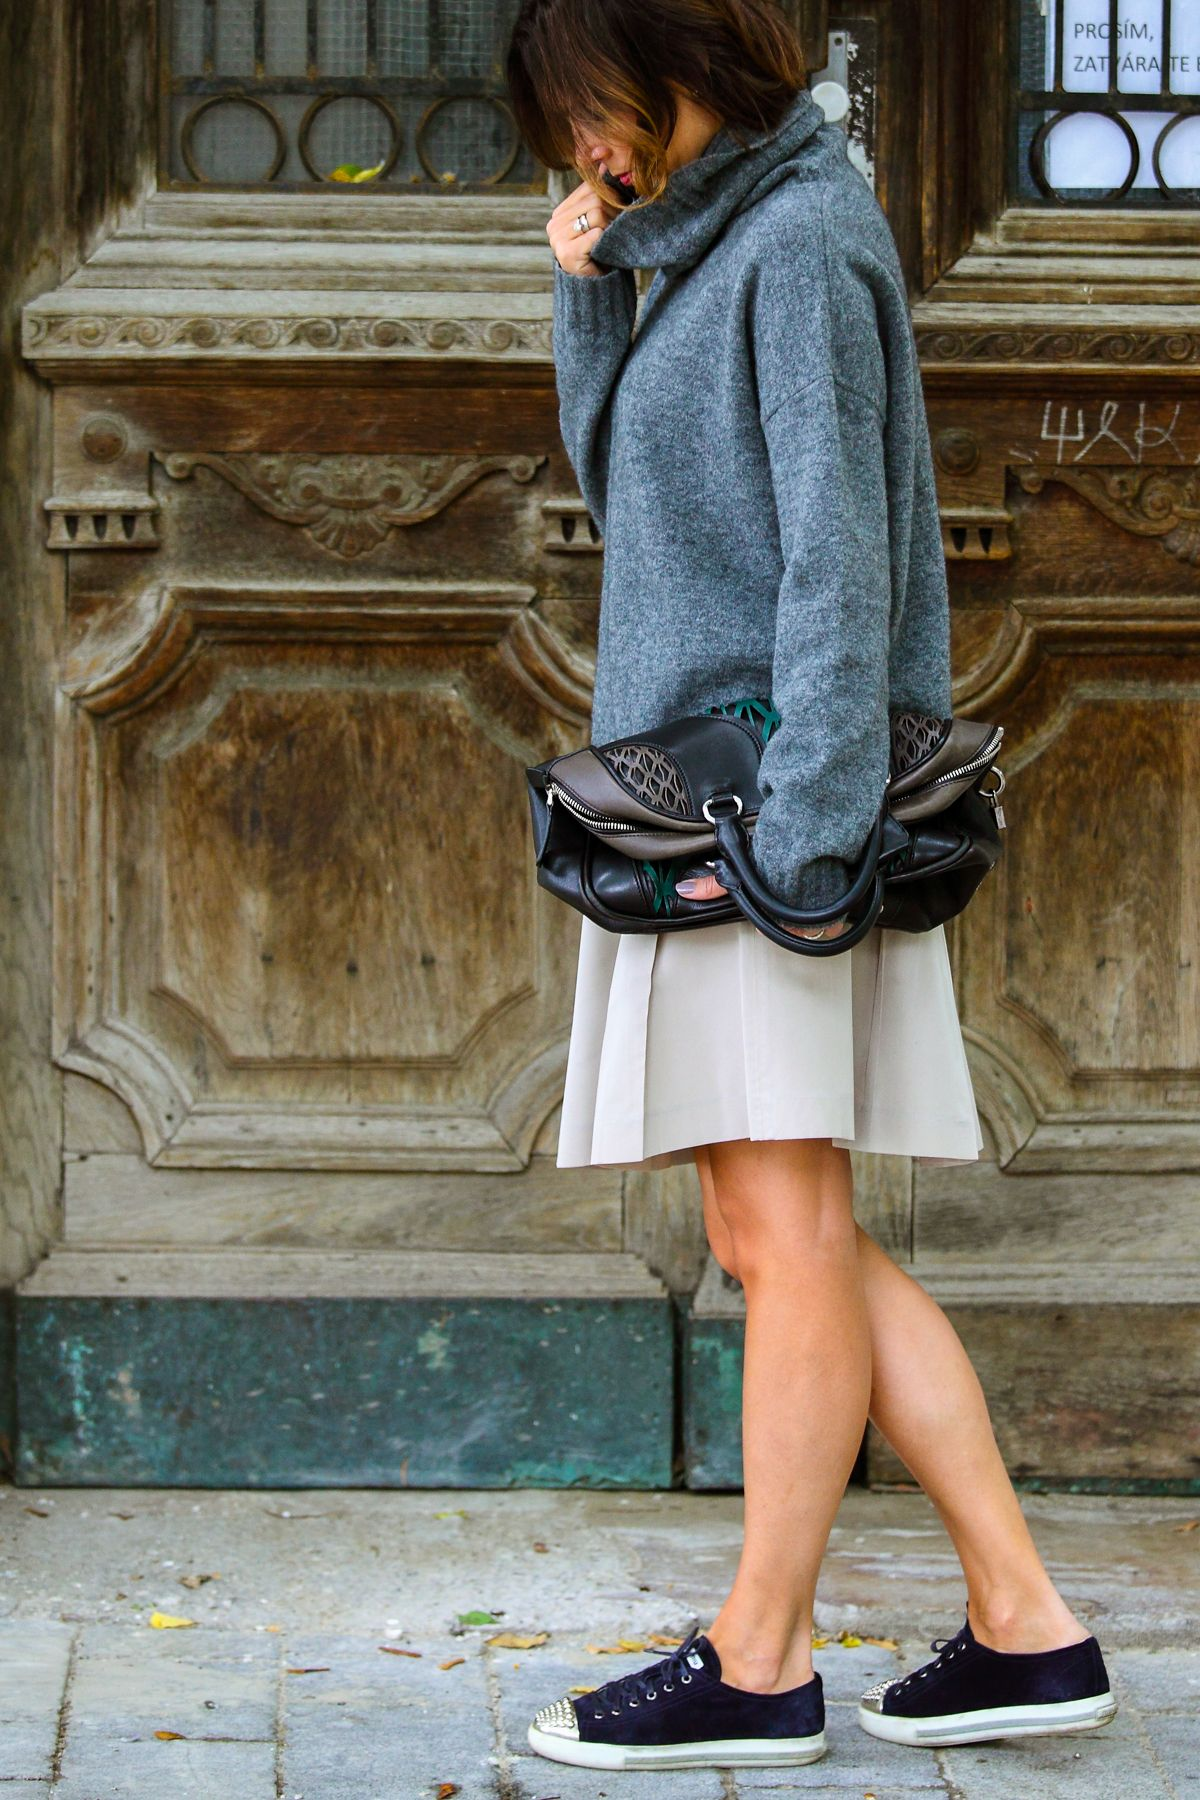 Theory oversized sweater I Miu Miu bag, skirt and sneakers I #streetwear I #point41